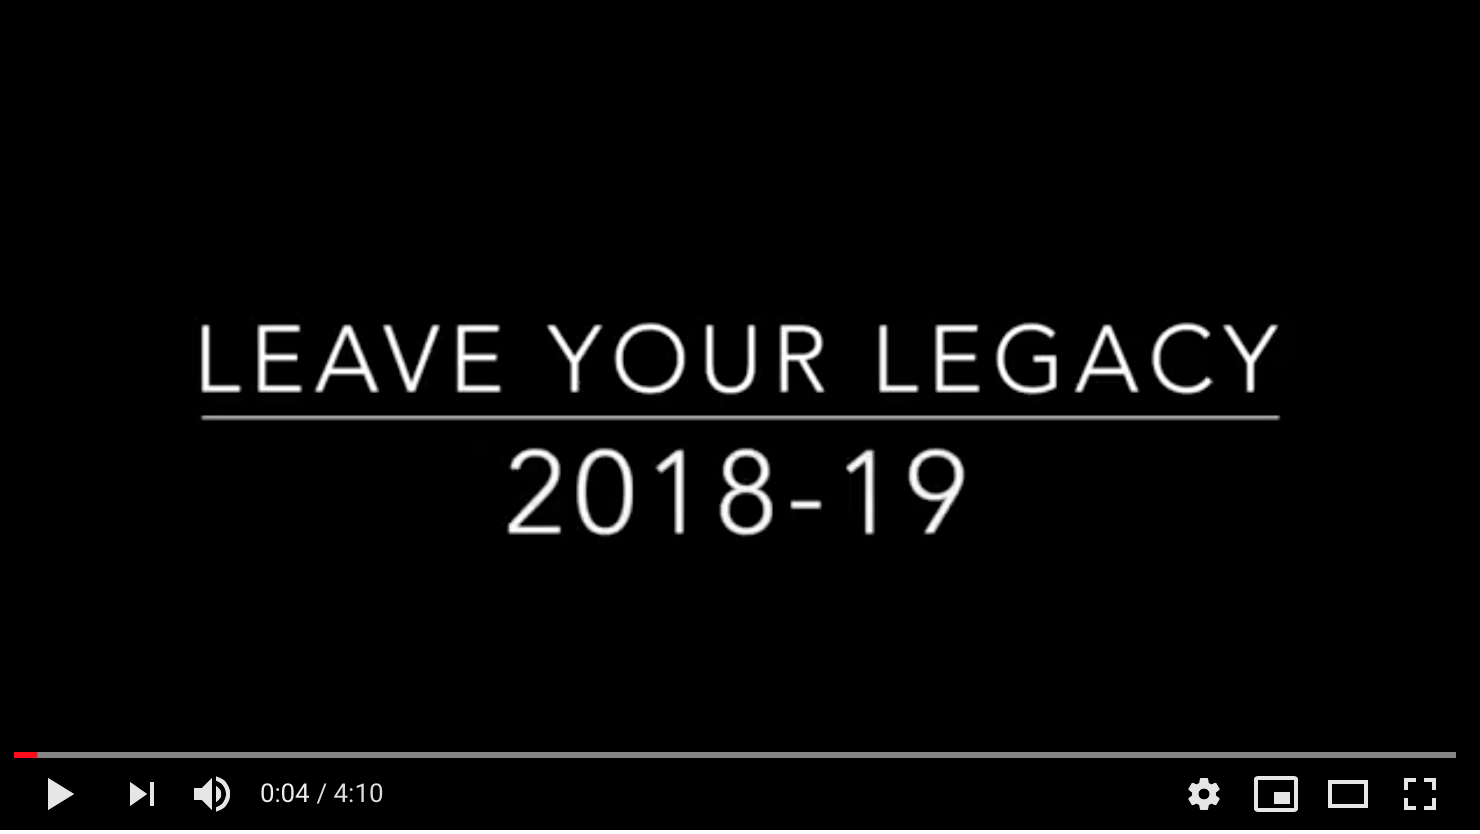 Watch our Legacy video here